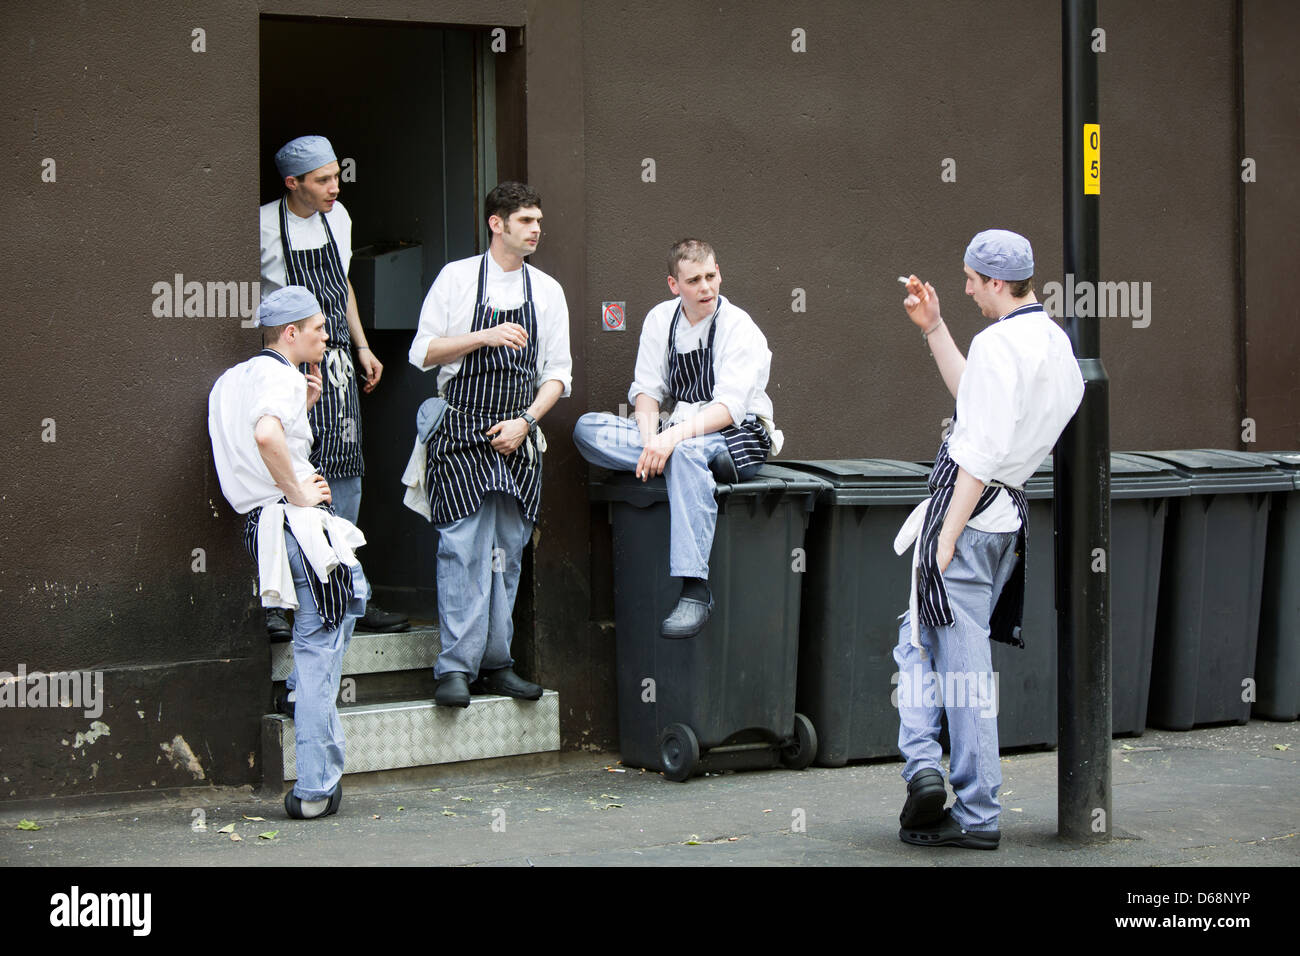 Restaurant Kitchen Staff manchester uk bar & grill chefs kitchen staff take a smoking break